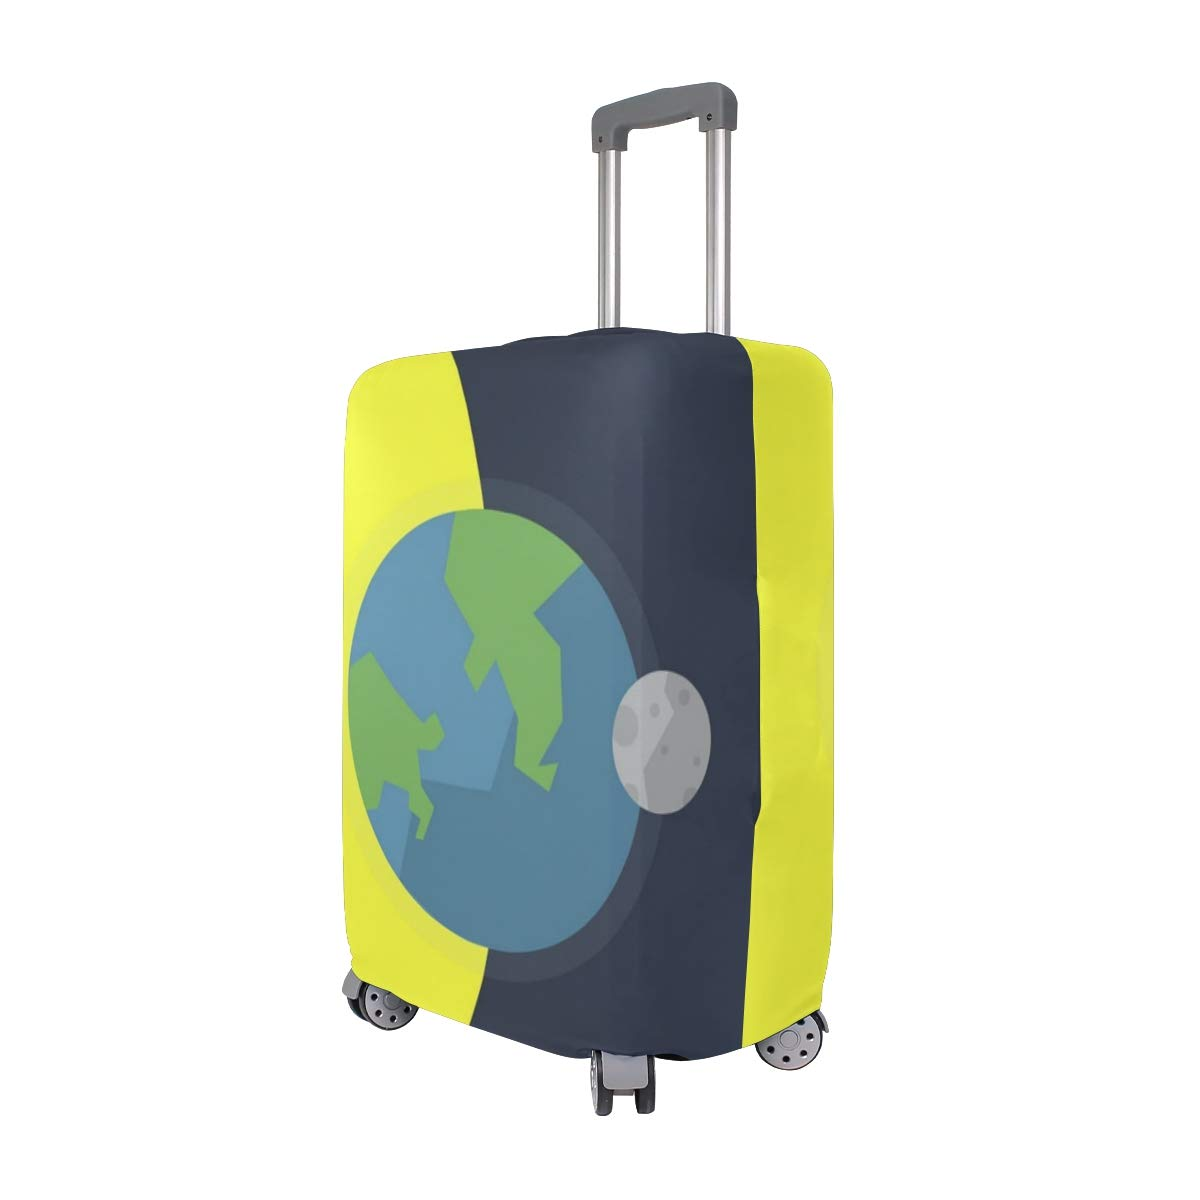 Travel Luggage Cover Anime Theme Sun Earth Moon Suitcase Protector Fits 22-24 Inch Washable Baggage Covers